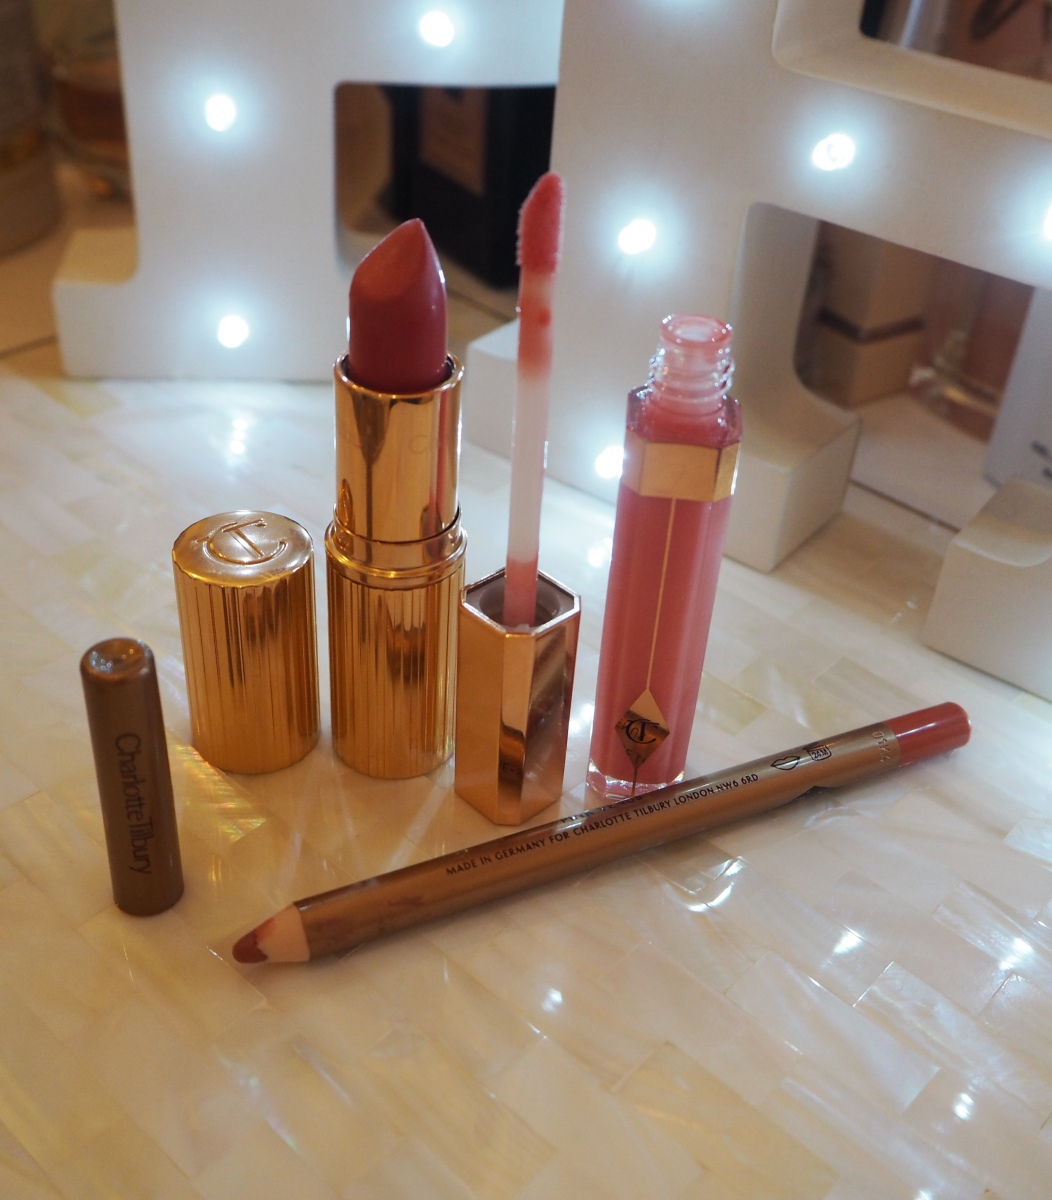 The Perfect Pink Kiss Charlotte Tilbury Coachella Coral lipstick K.I.S.S.I.N.G lipstick Lip Cheat Pink Venus Lip Liner Lip Lustre Portobello Girl Lip Lacquer Review Swatch